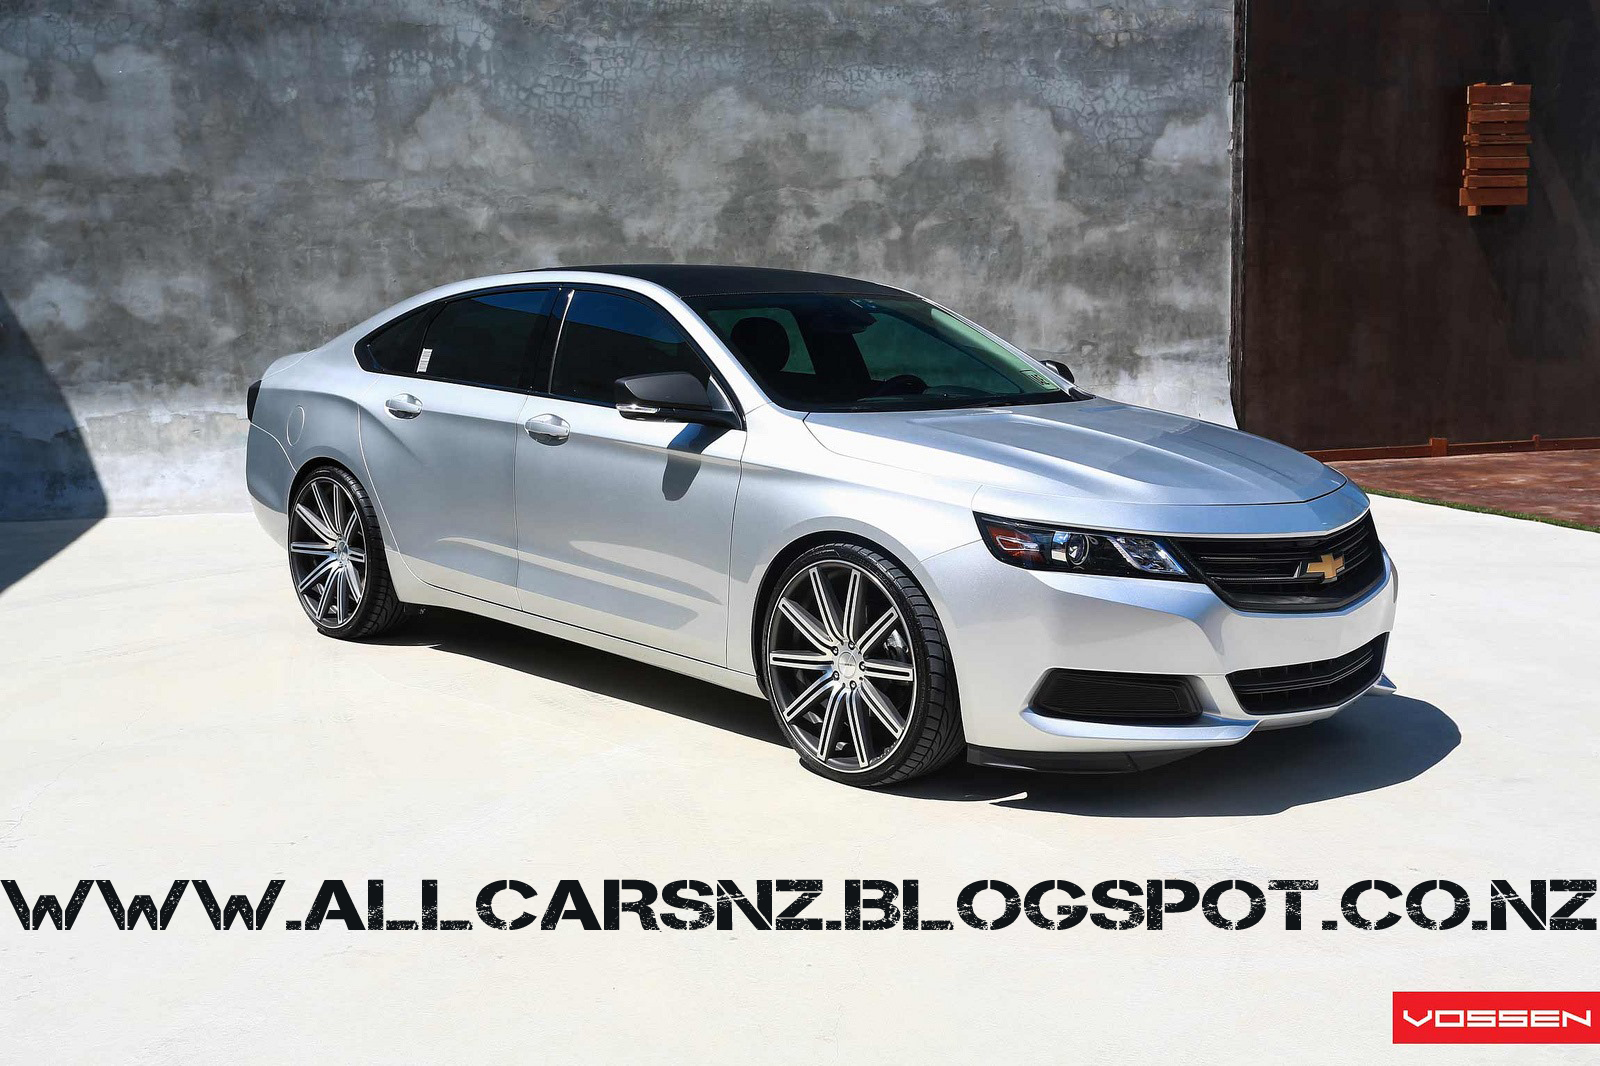 all tuning cars nz 2013 chevrolet impala by vossen. Black Bedroom Furniture Sets. Home Design Ideas